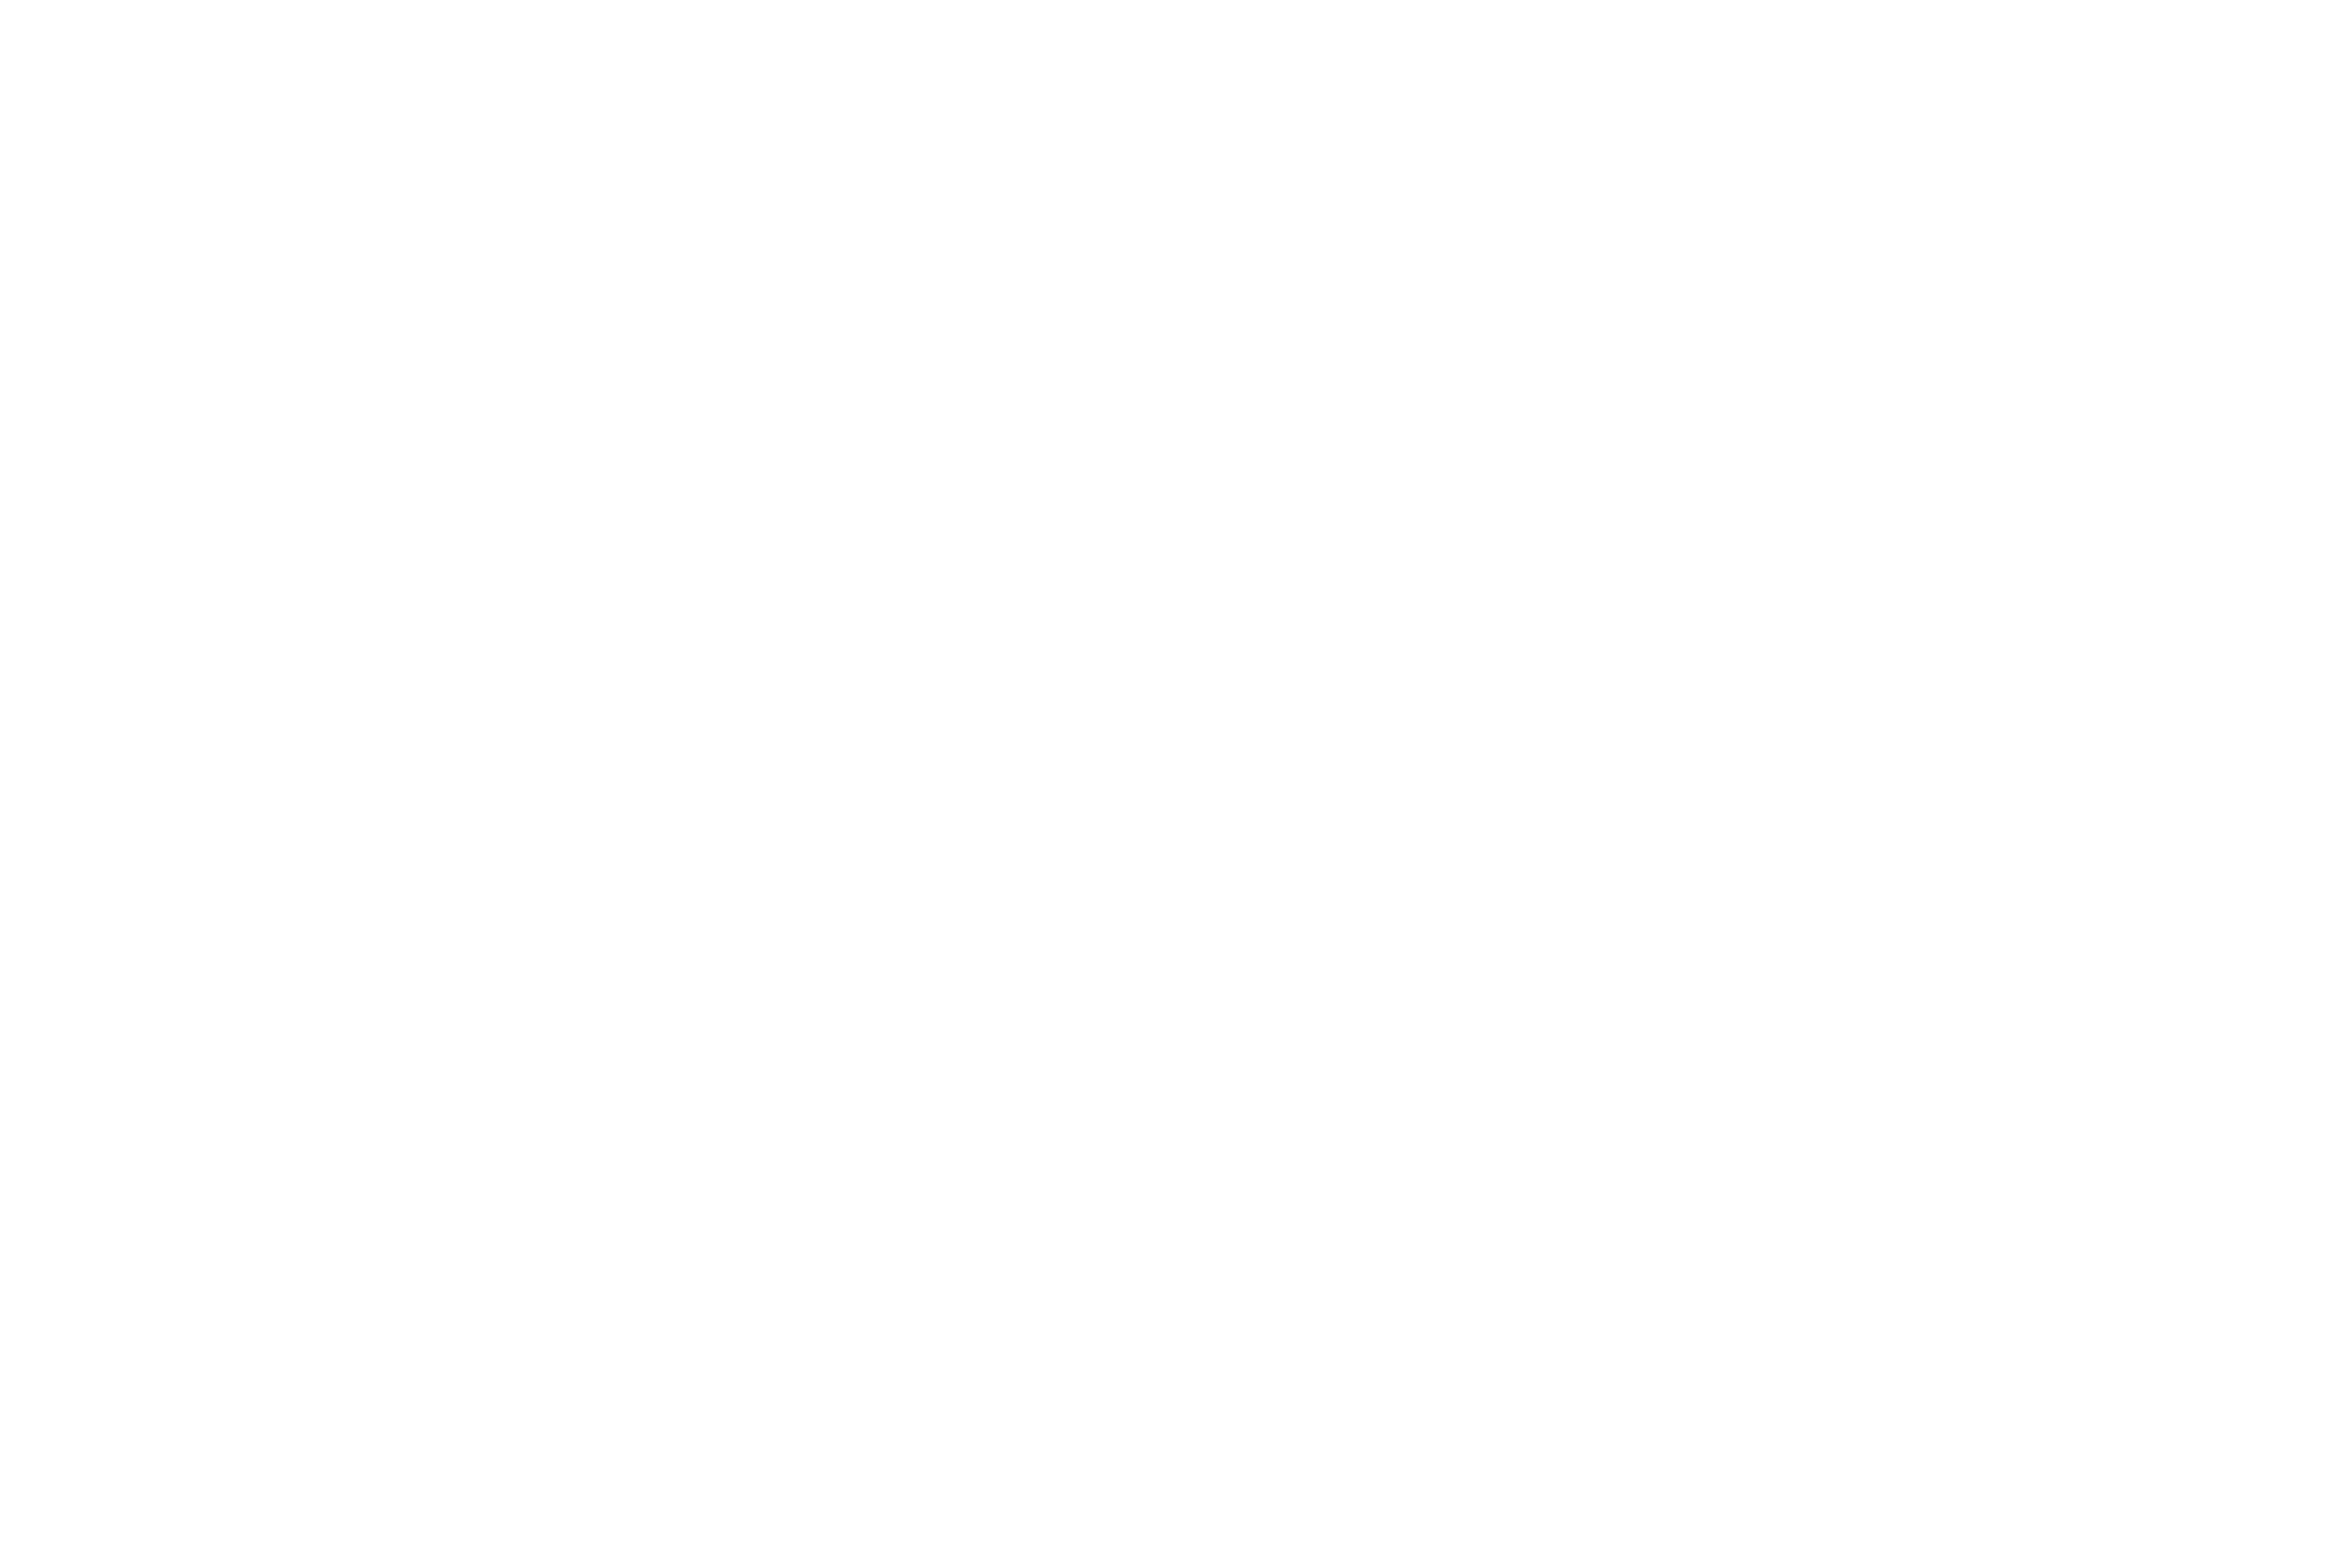 Robin-Anderson-white-hires.png